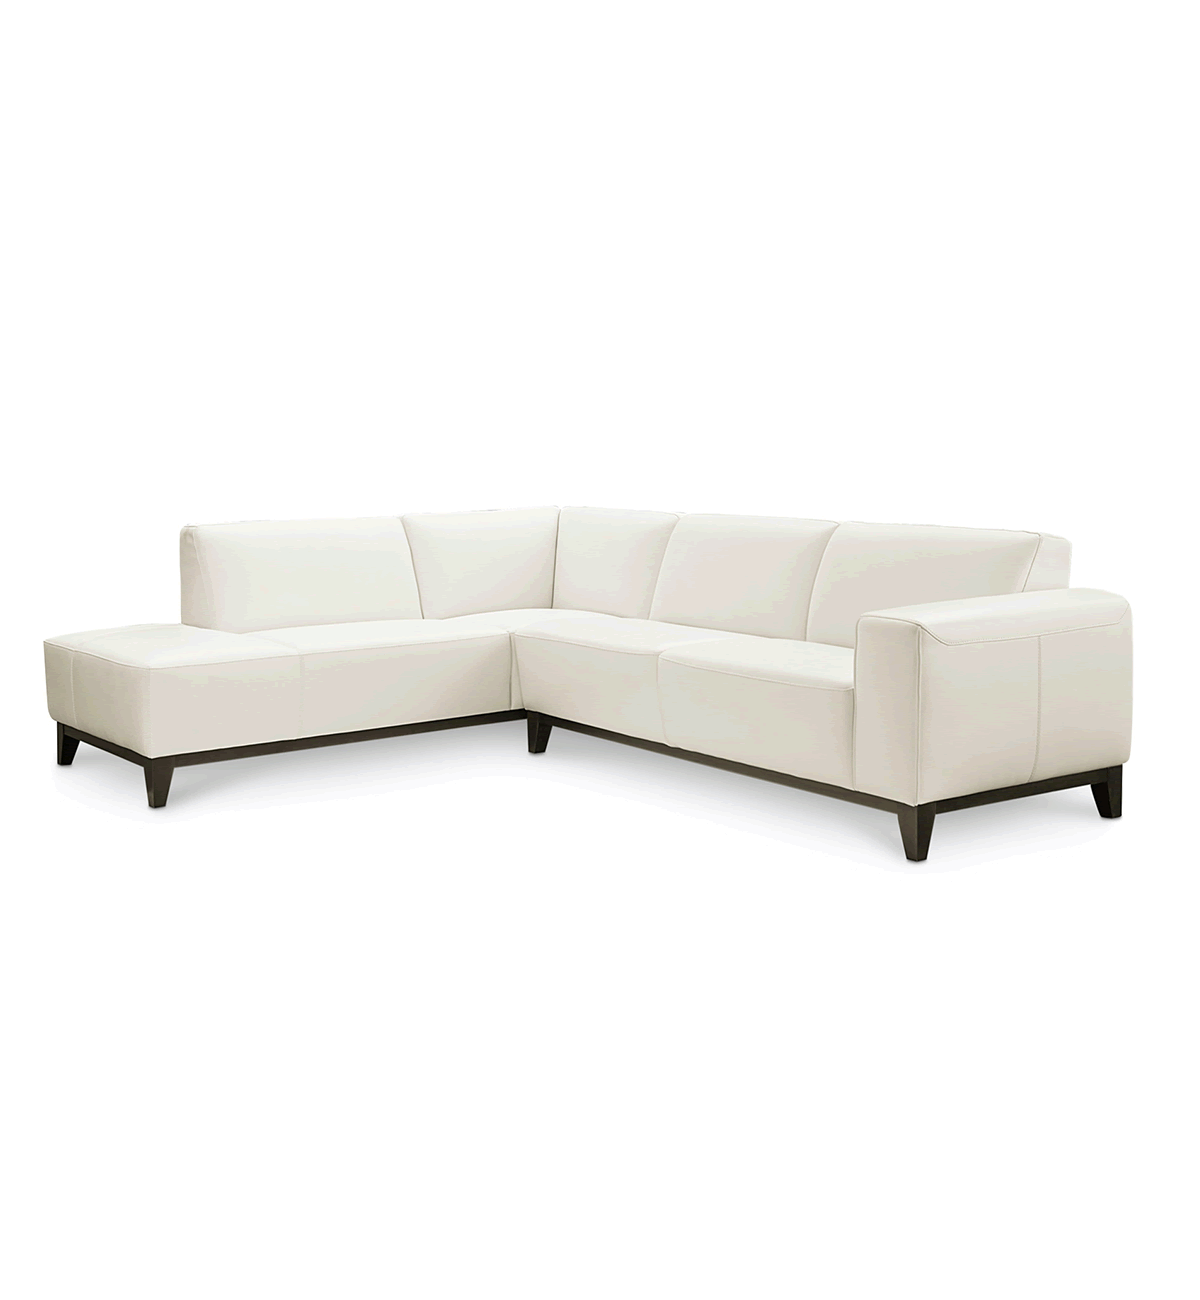 Sofas Couches Loveseats Couches And Sofas Macy 39s